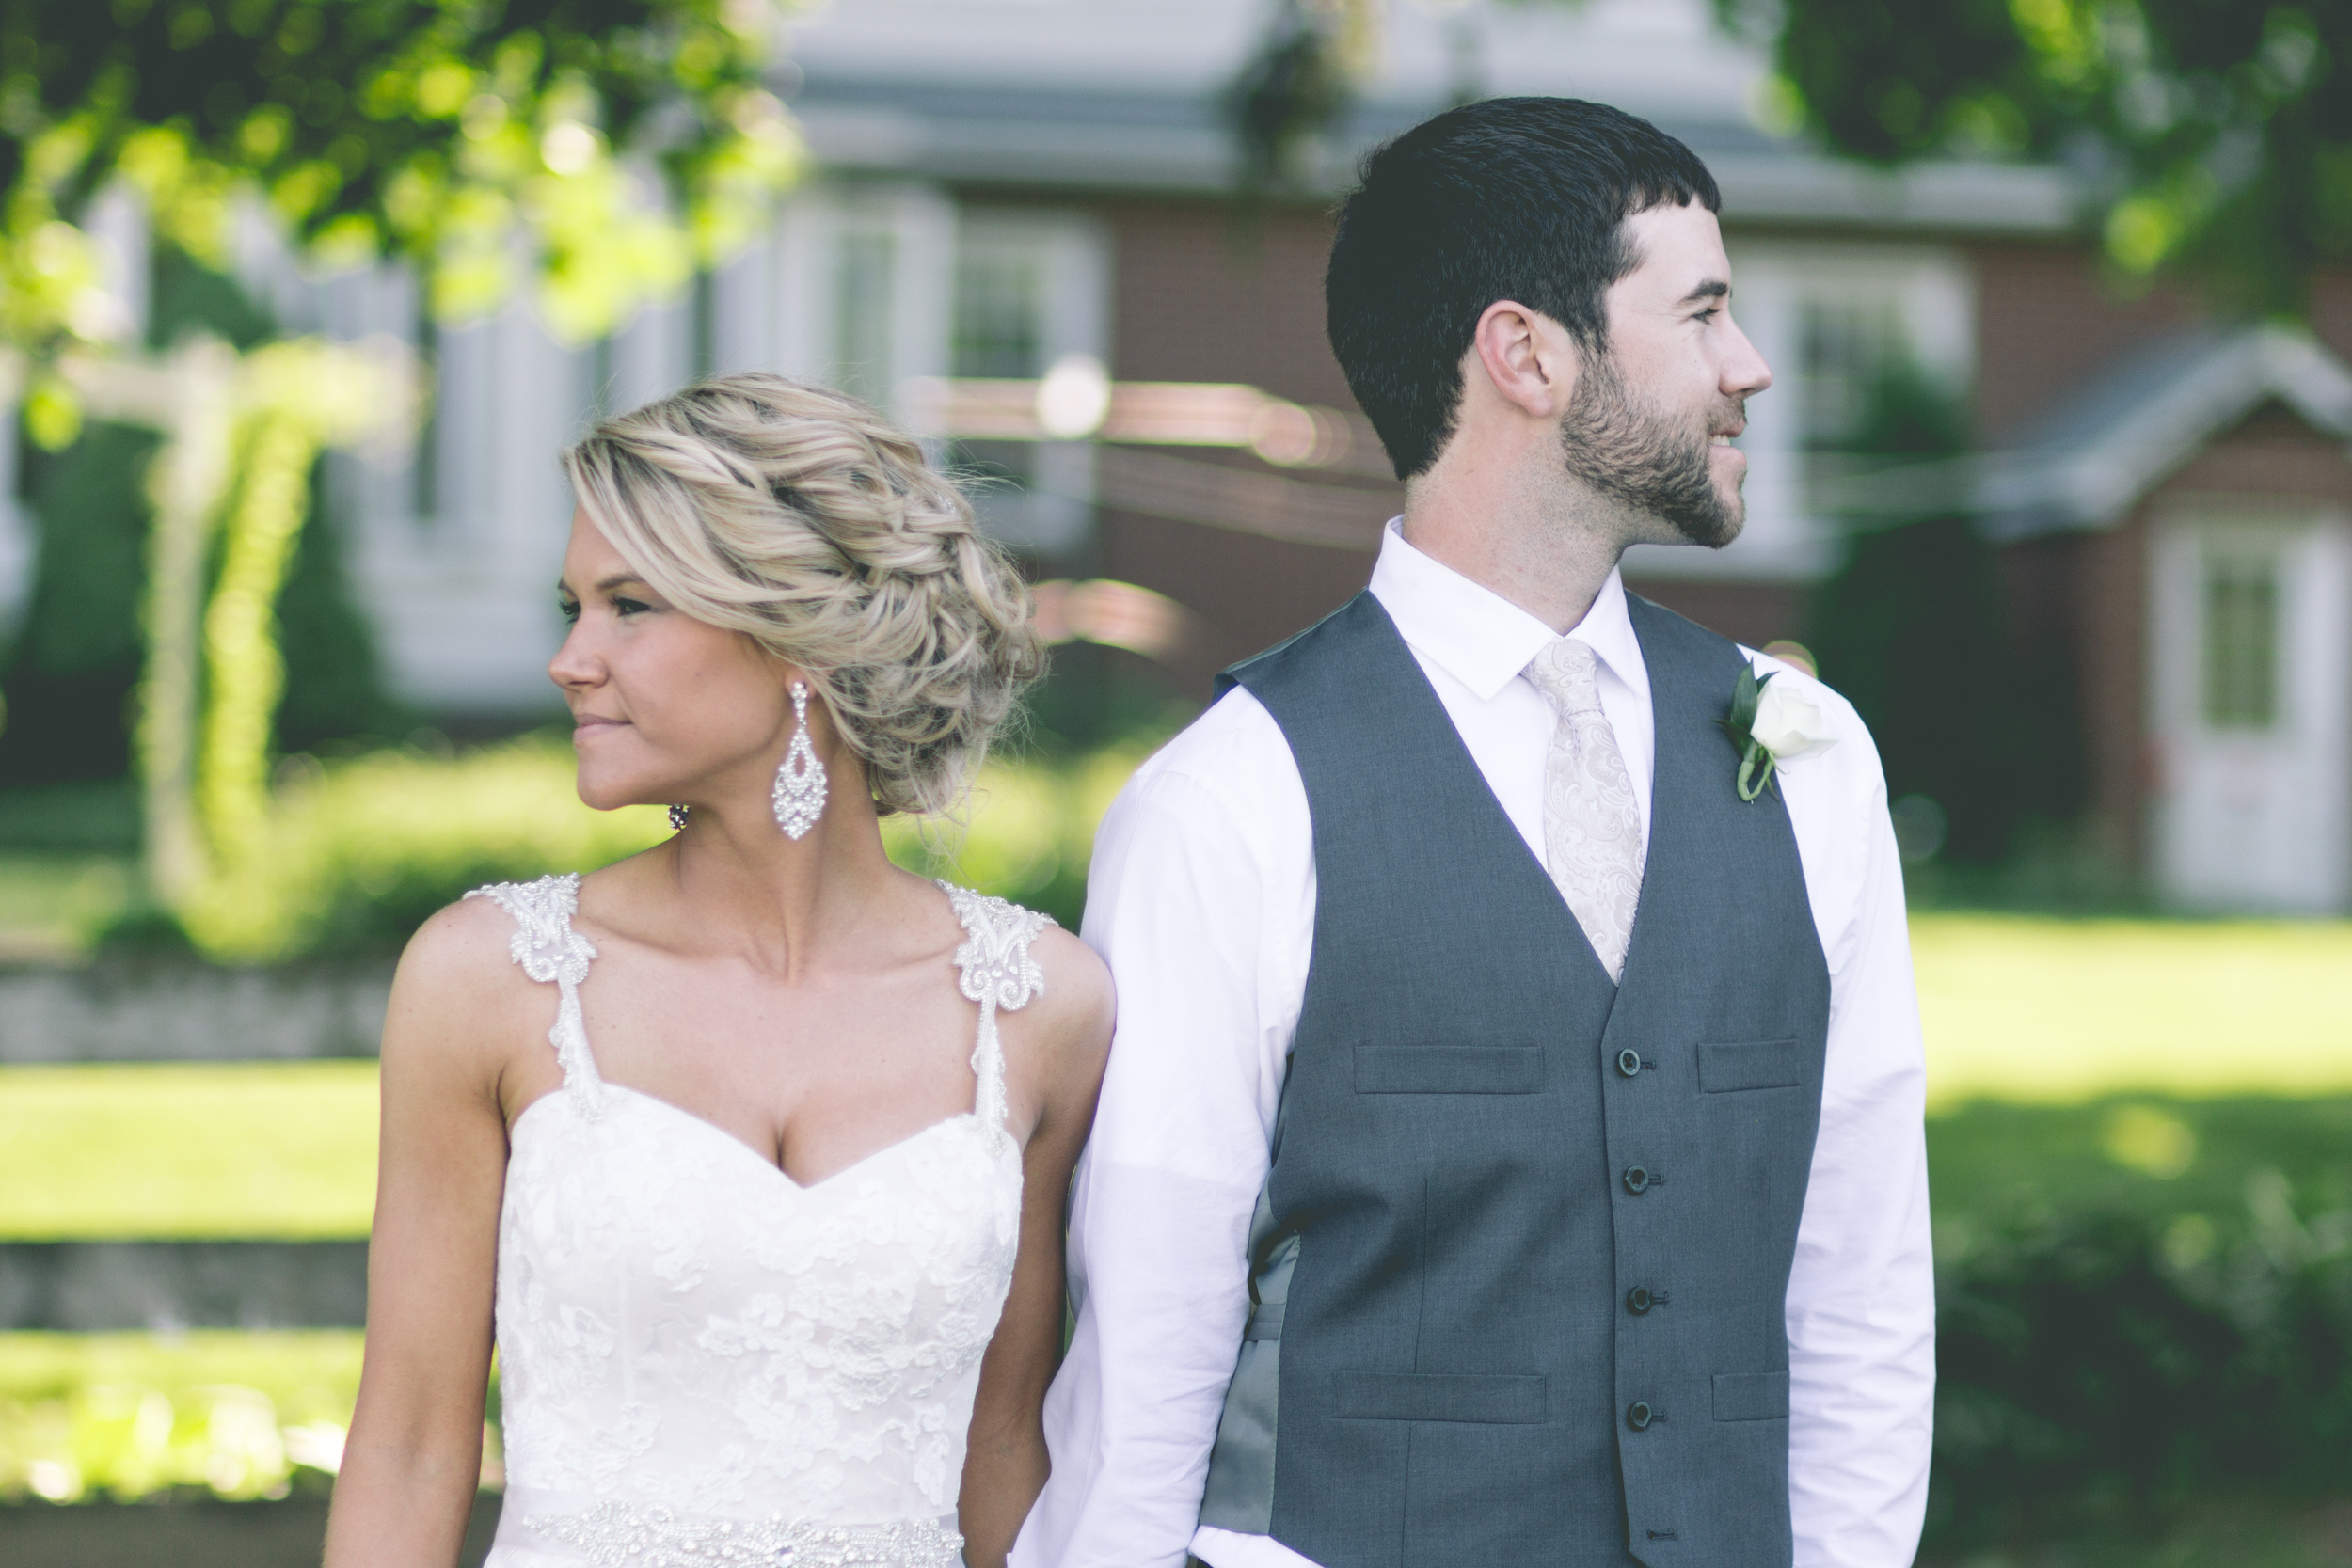 Rustic-Blonde-Bride-Groom